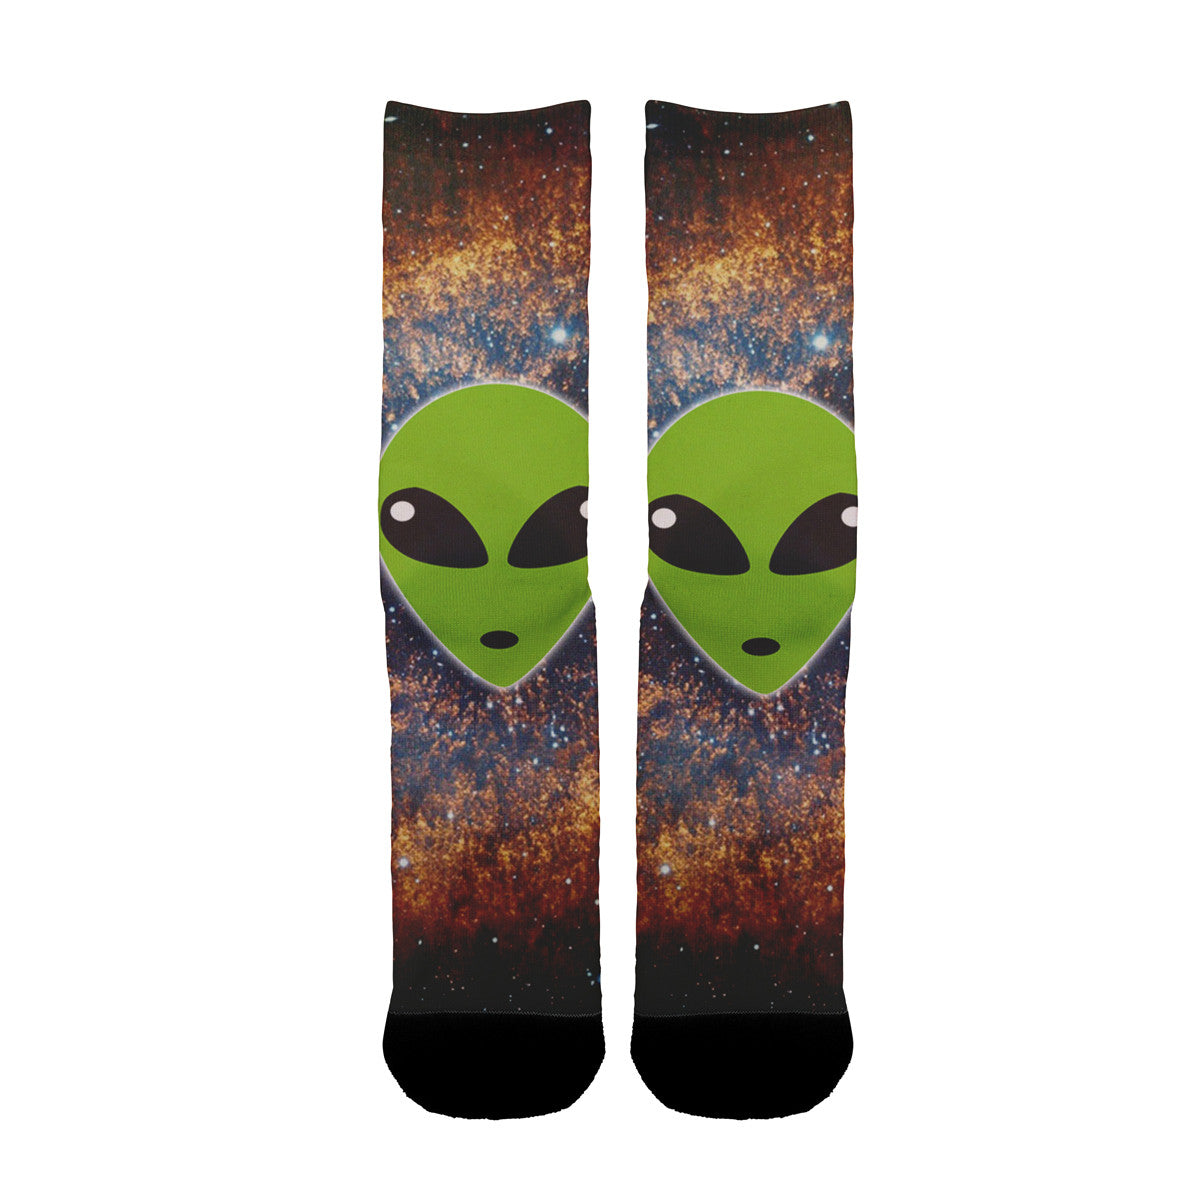 Galaxy Alien Socks